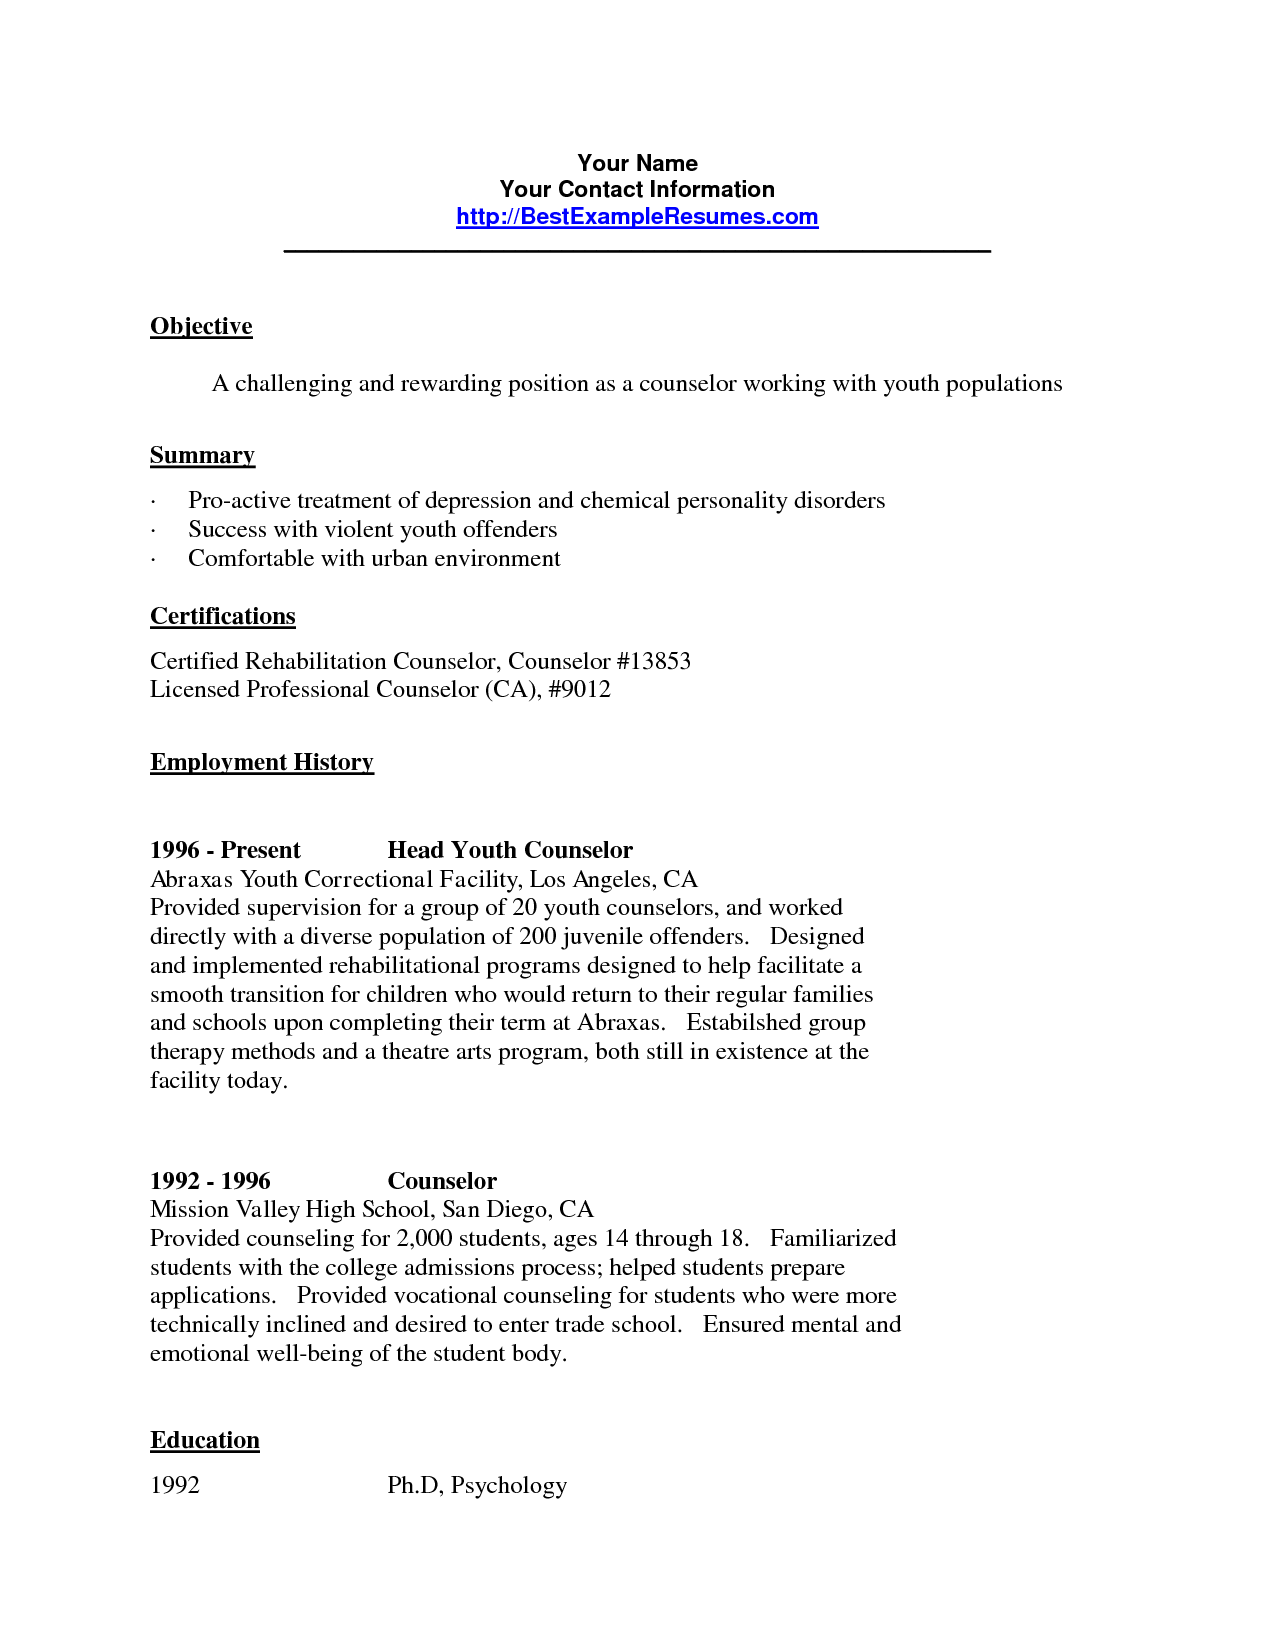 cover letter example for juvenile counseling httpmegagipercom2017 - Psychological Wellbeing Practitioner Sample Resume